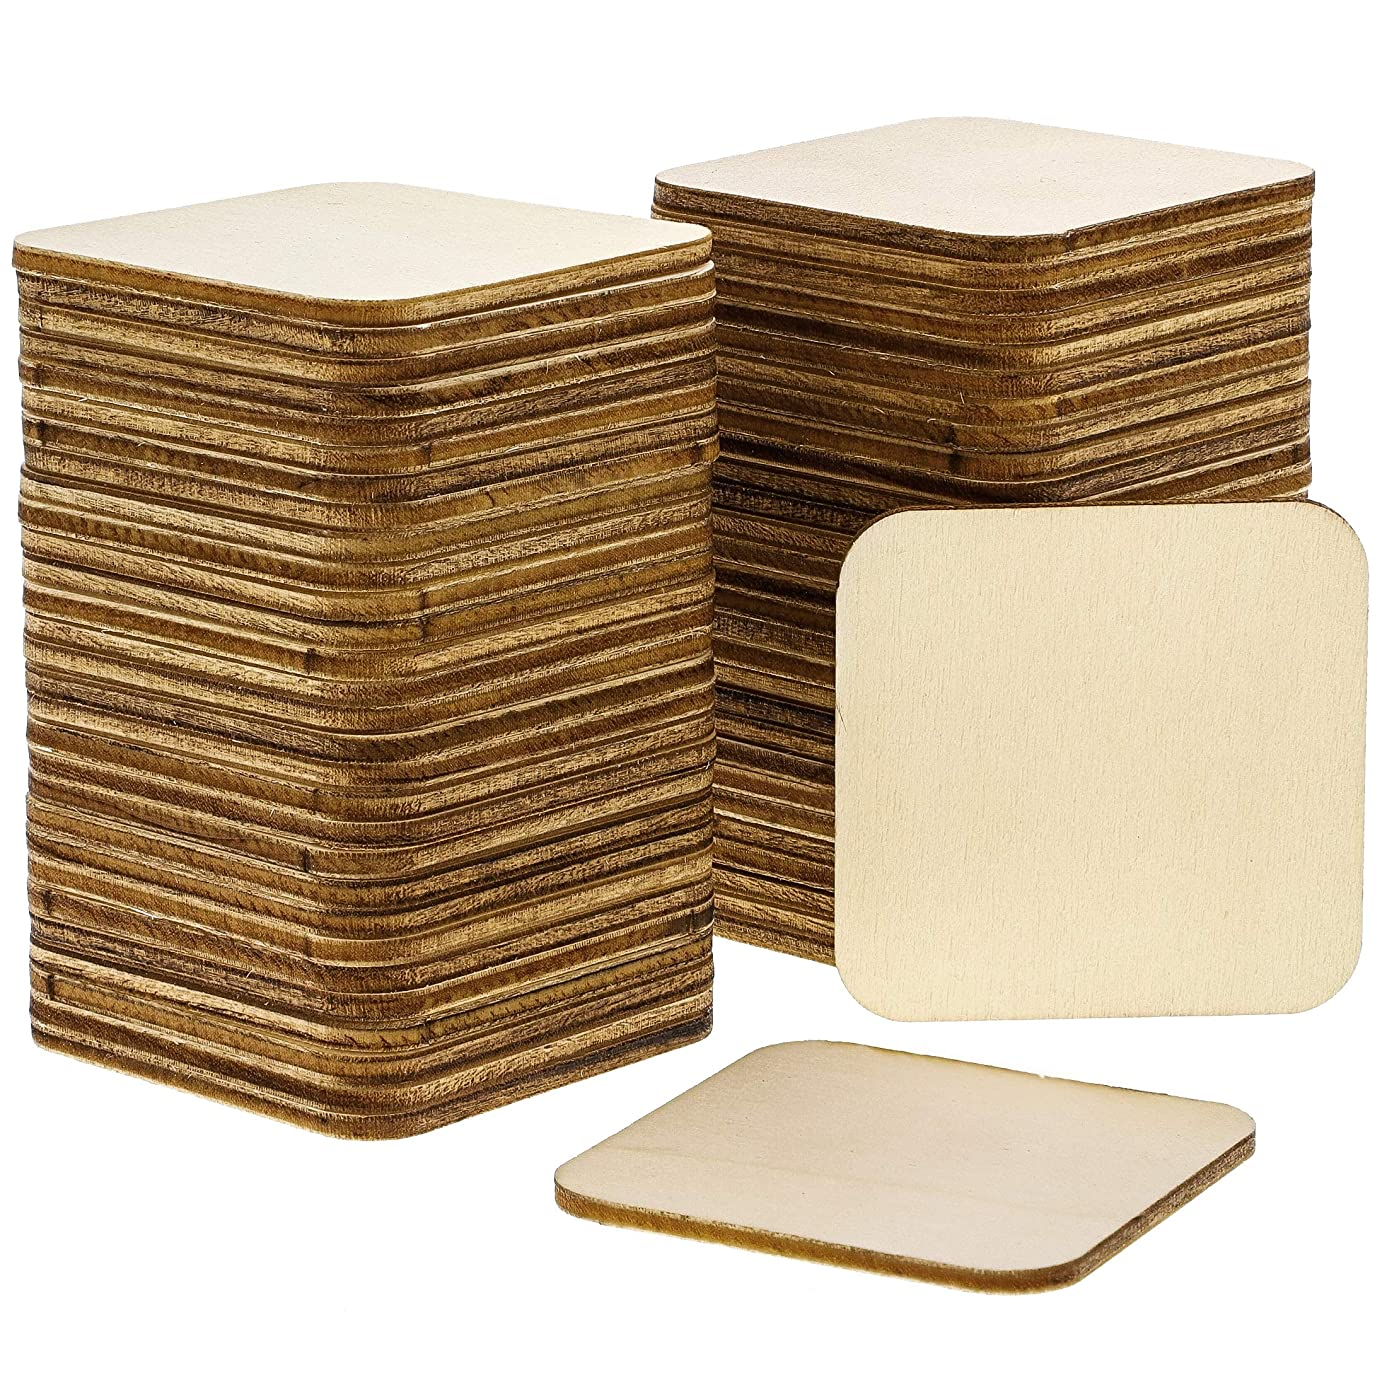 Bright Creations 60-Pack Unfinished Wood Square Tile Cutouts for DIY Crafts, 2 x 2 Inches